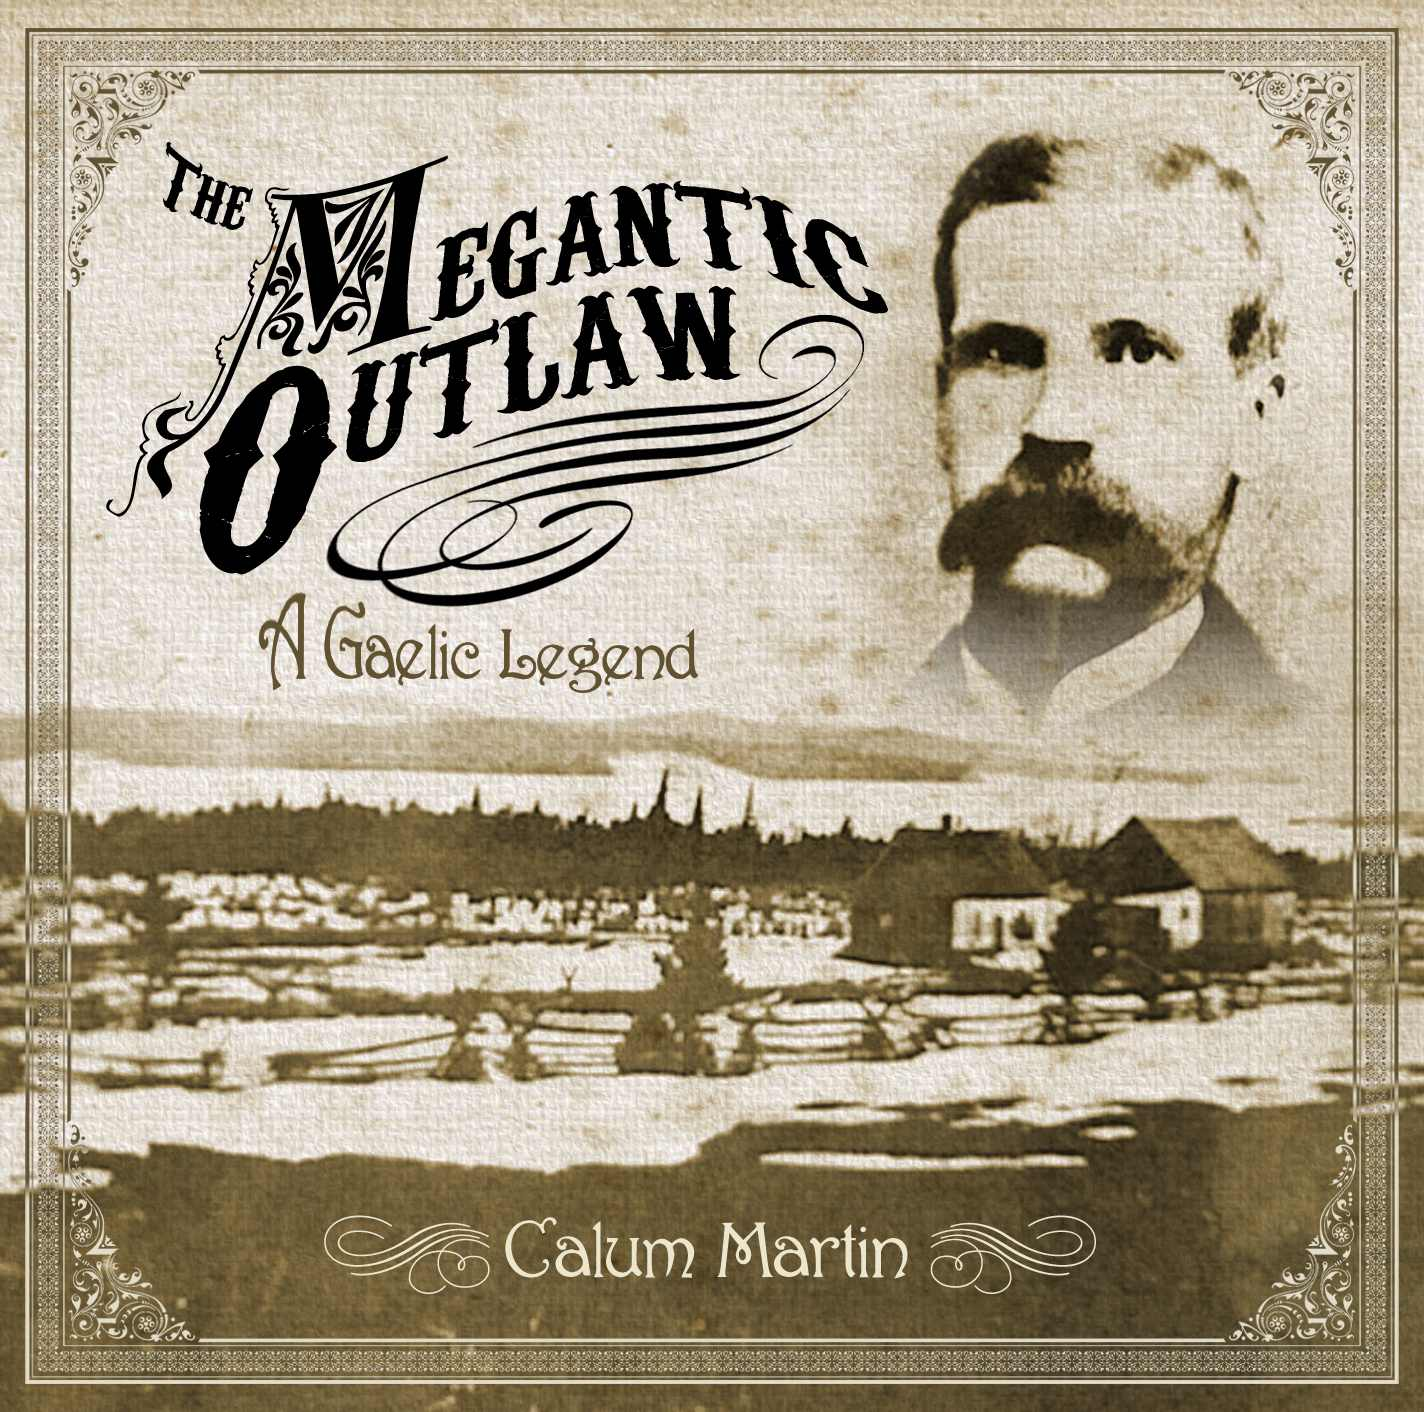 The Megantic Outlaw